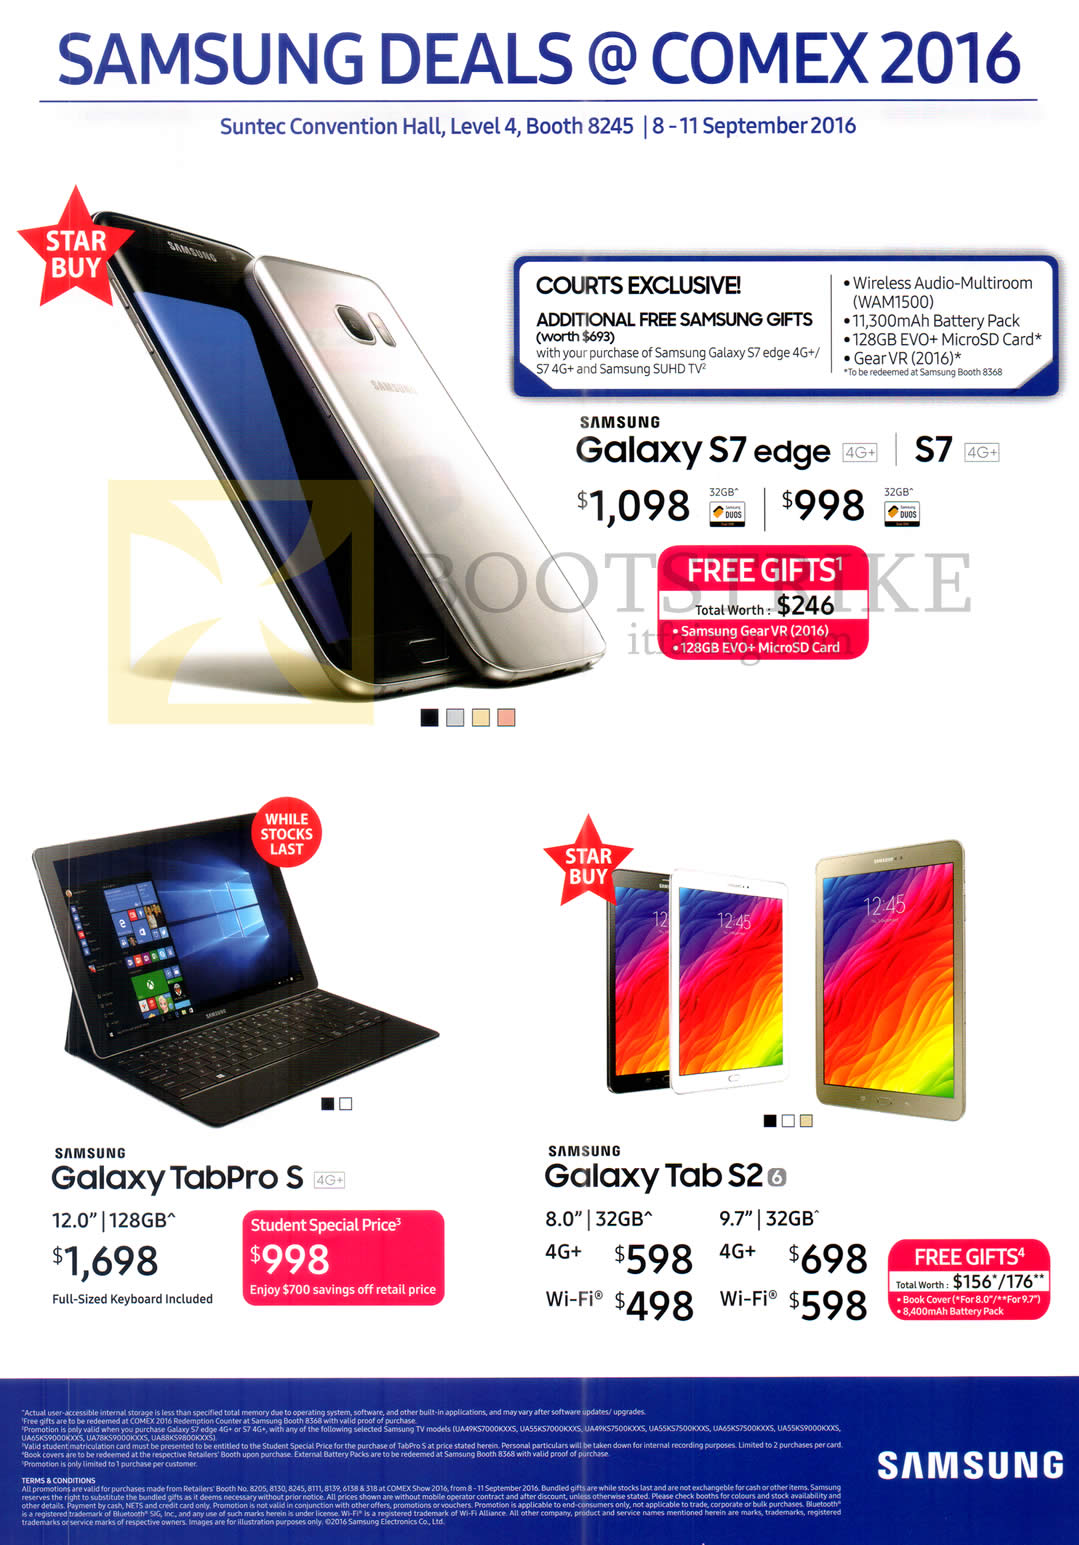 COMEX 2016 price list image brochure of Samsung Tablet, Mobile SmartPhone, Galaxy S7, S7 Edge, TabPro S, Tab S2